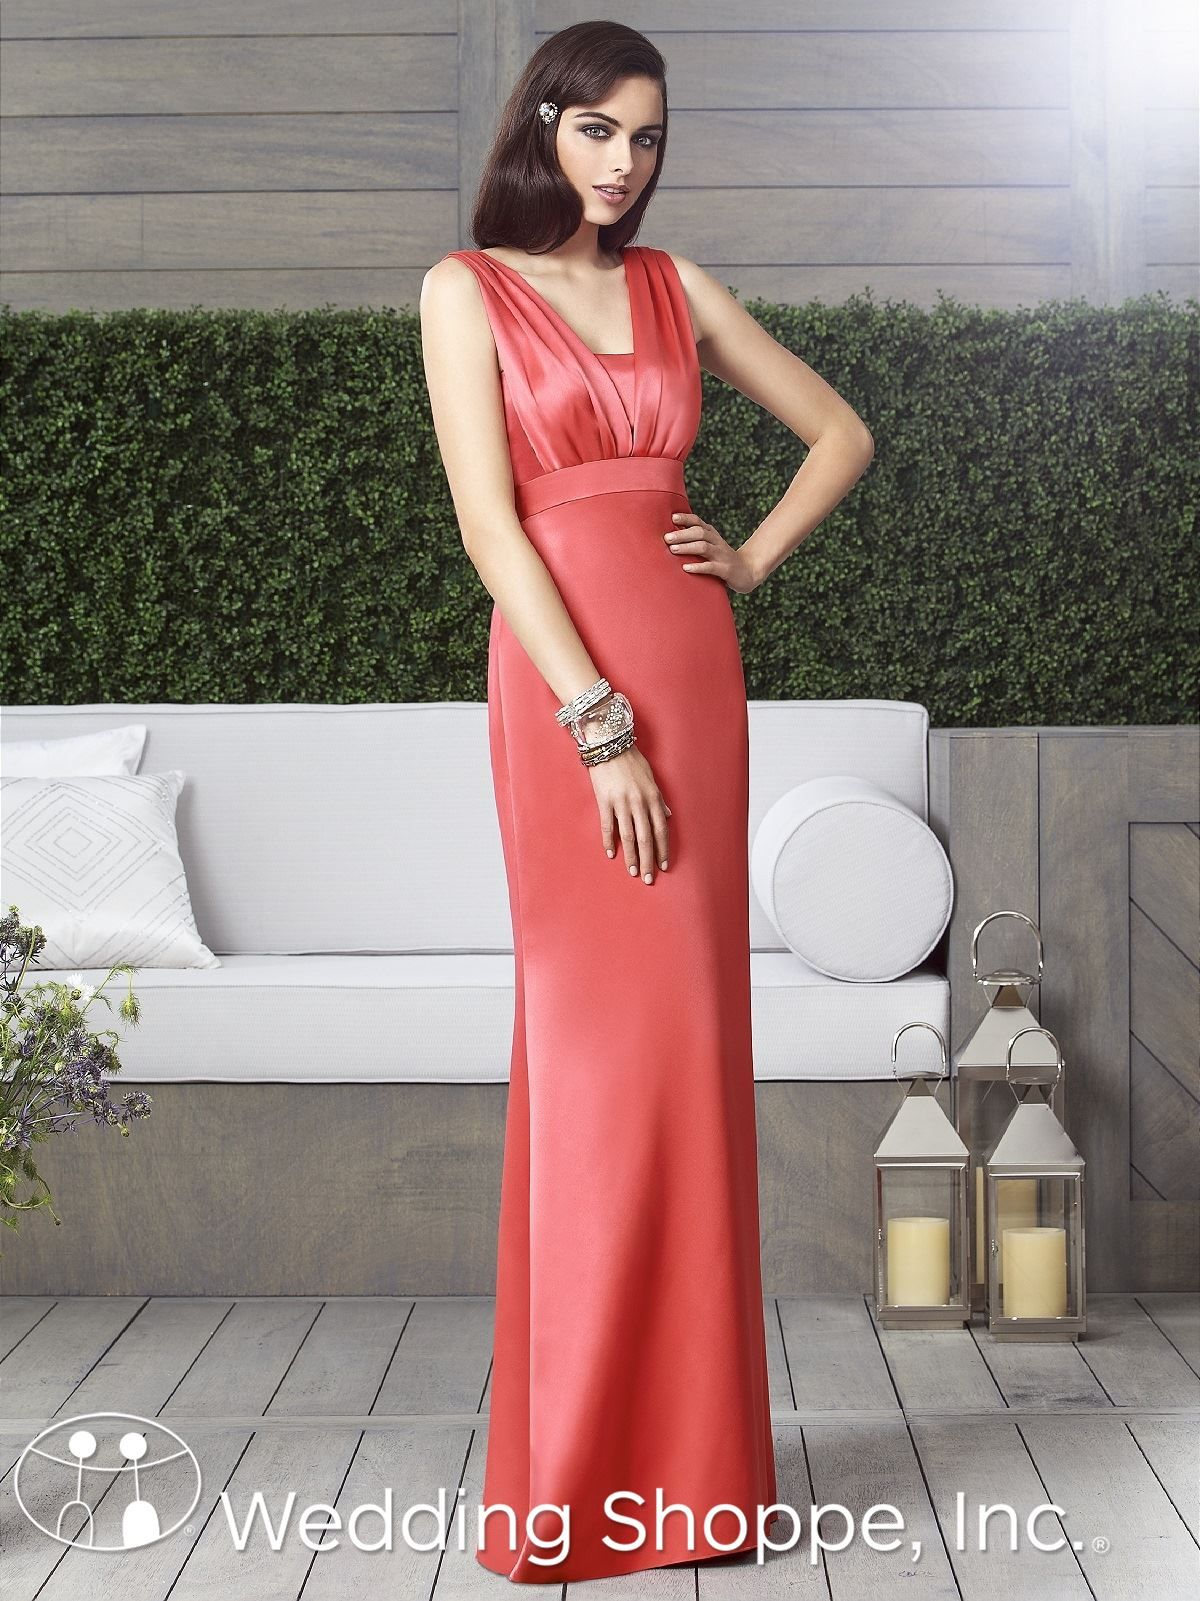 Dessy bridesmaid dress 2899 bridesmaid dress pinterest dessy bridesmaid dress 2899 ombrellifo Choice Image